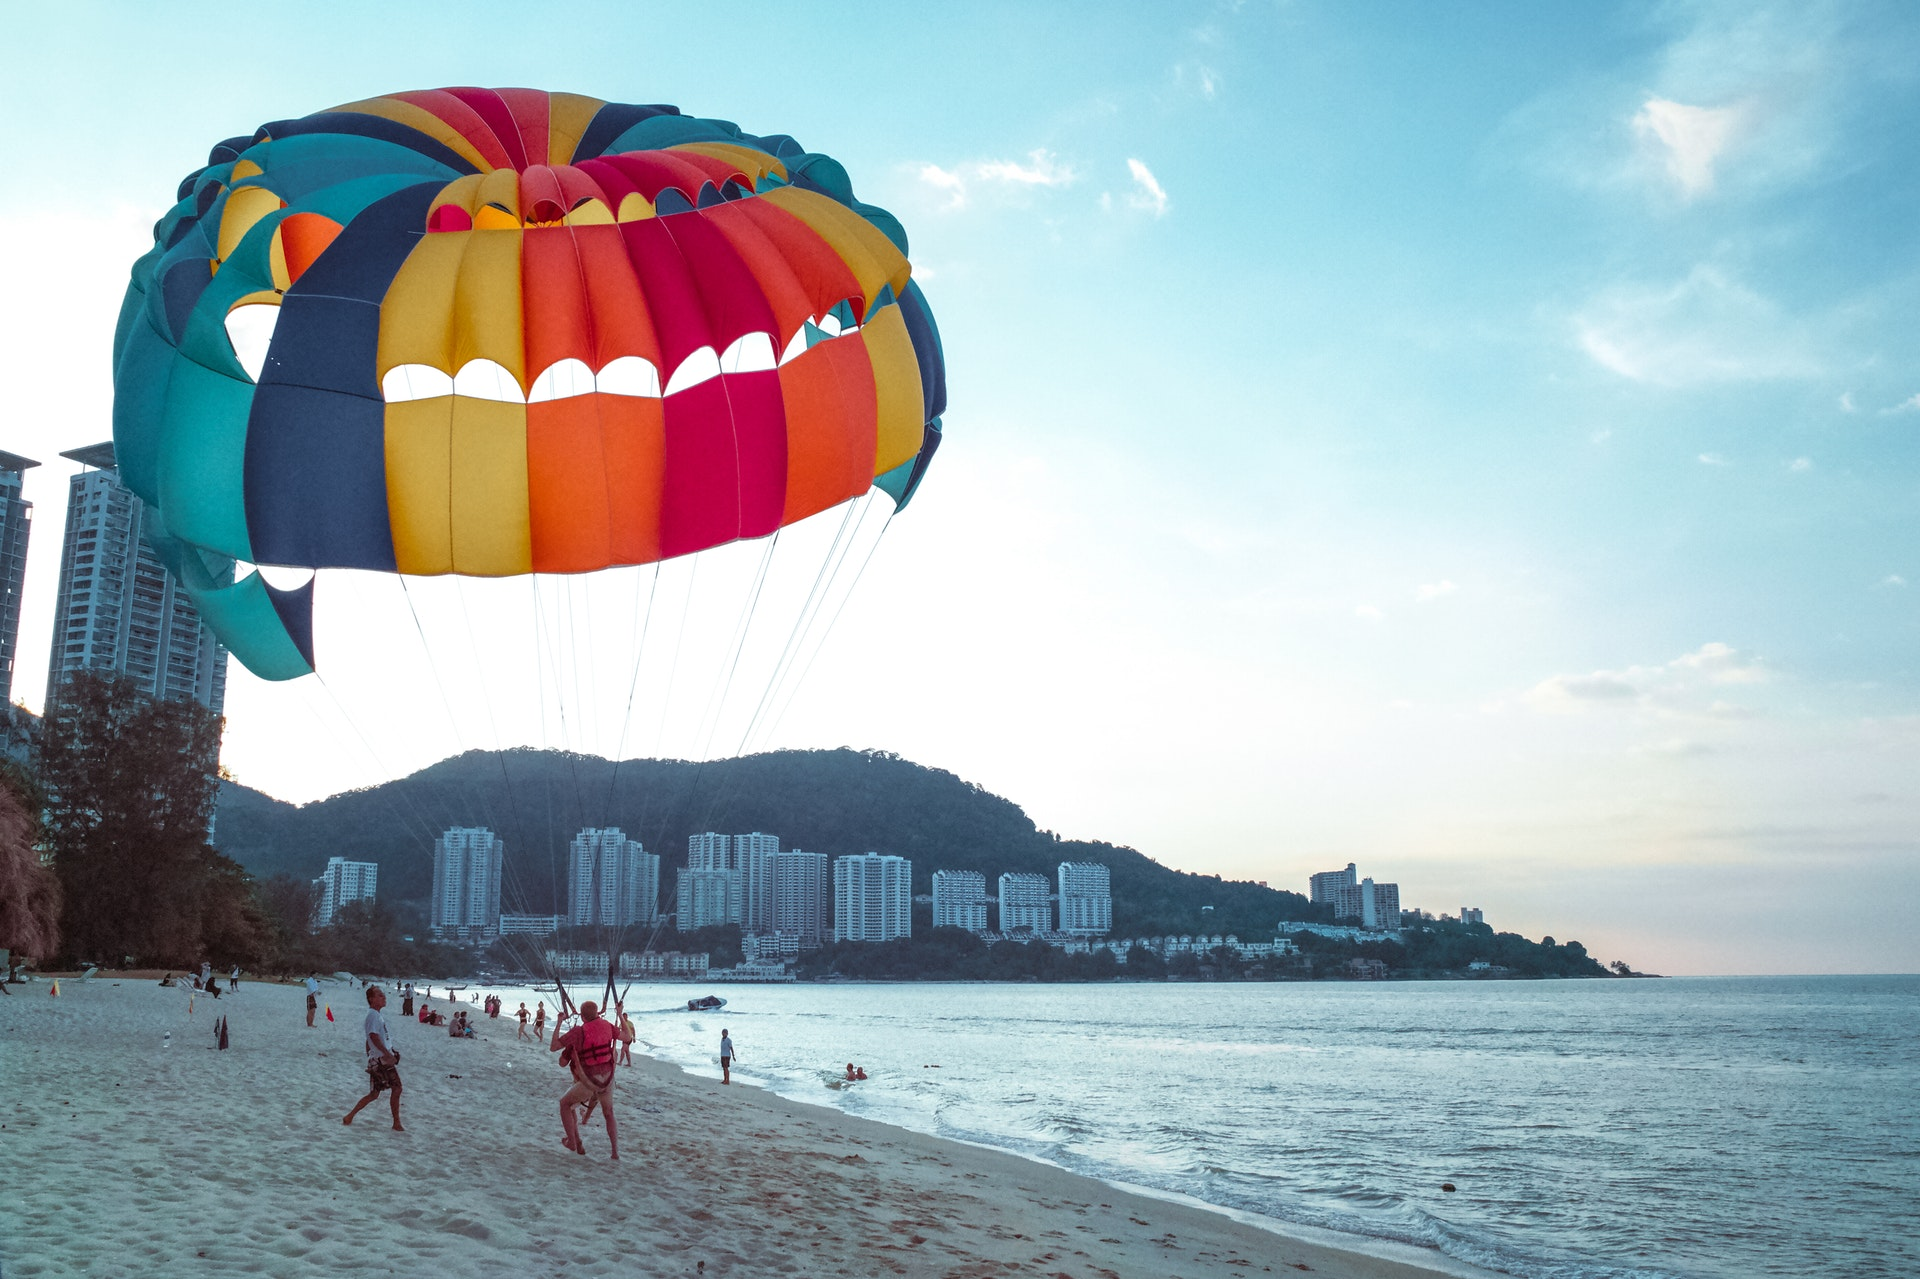 beach-coast-parachute-65310